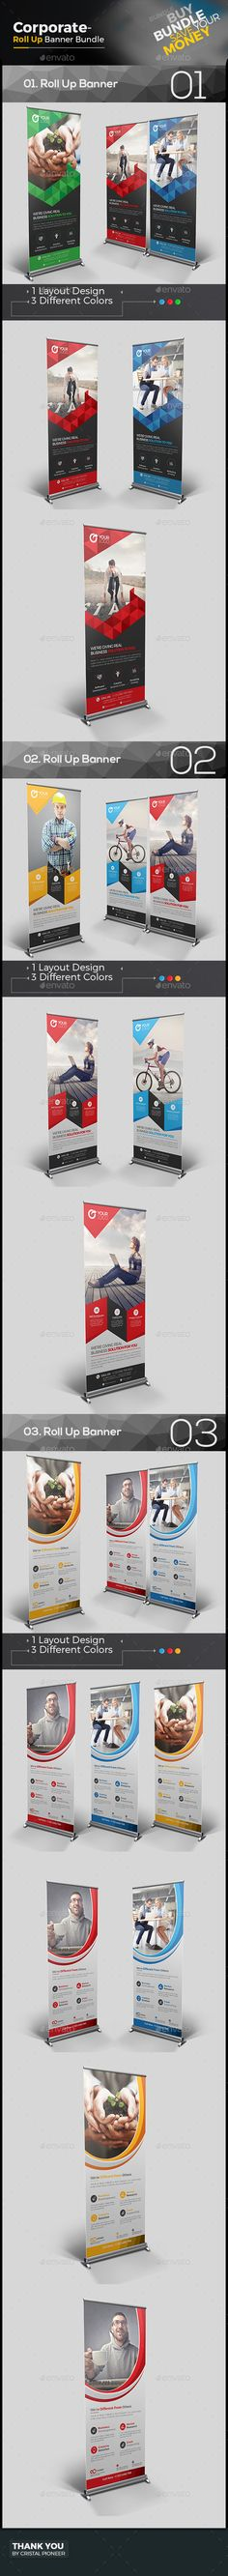 3 Roll Up Banner Bundle Template Vector EPS, AI Illustrator. Download here: http://graphicriver.net/item/roll-up-banner-bundle-3-in-1/16079416?ref=ksioks